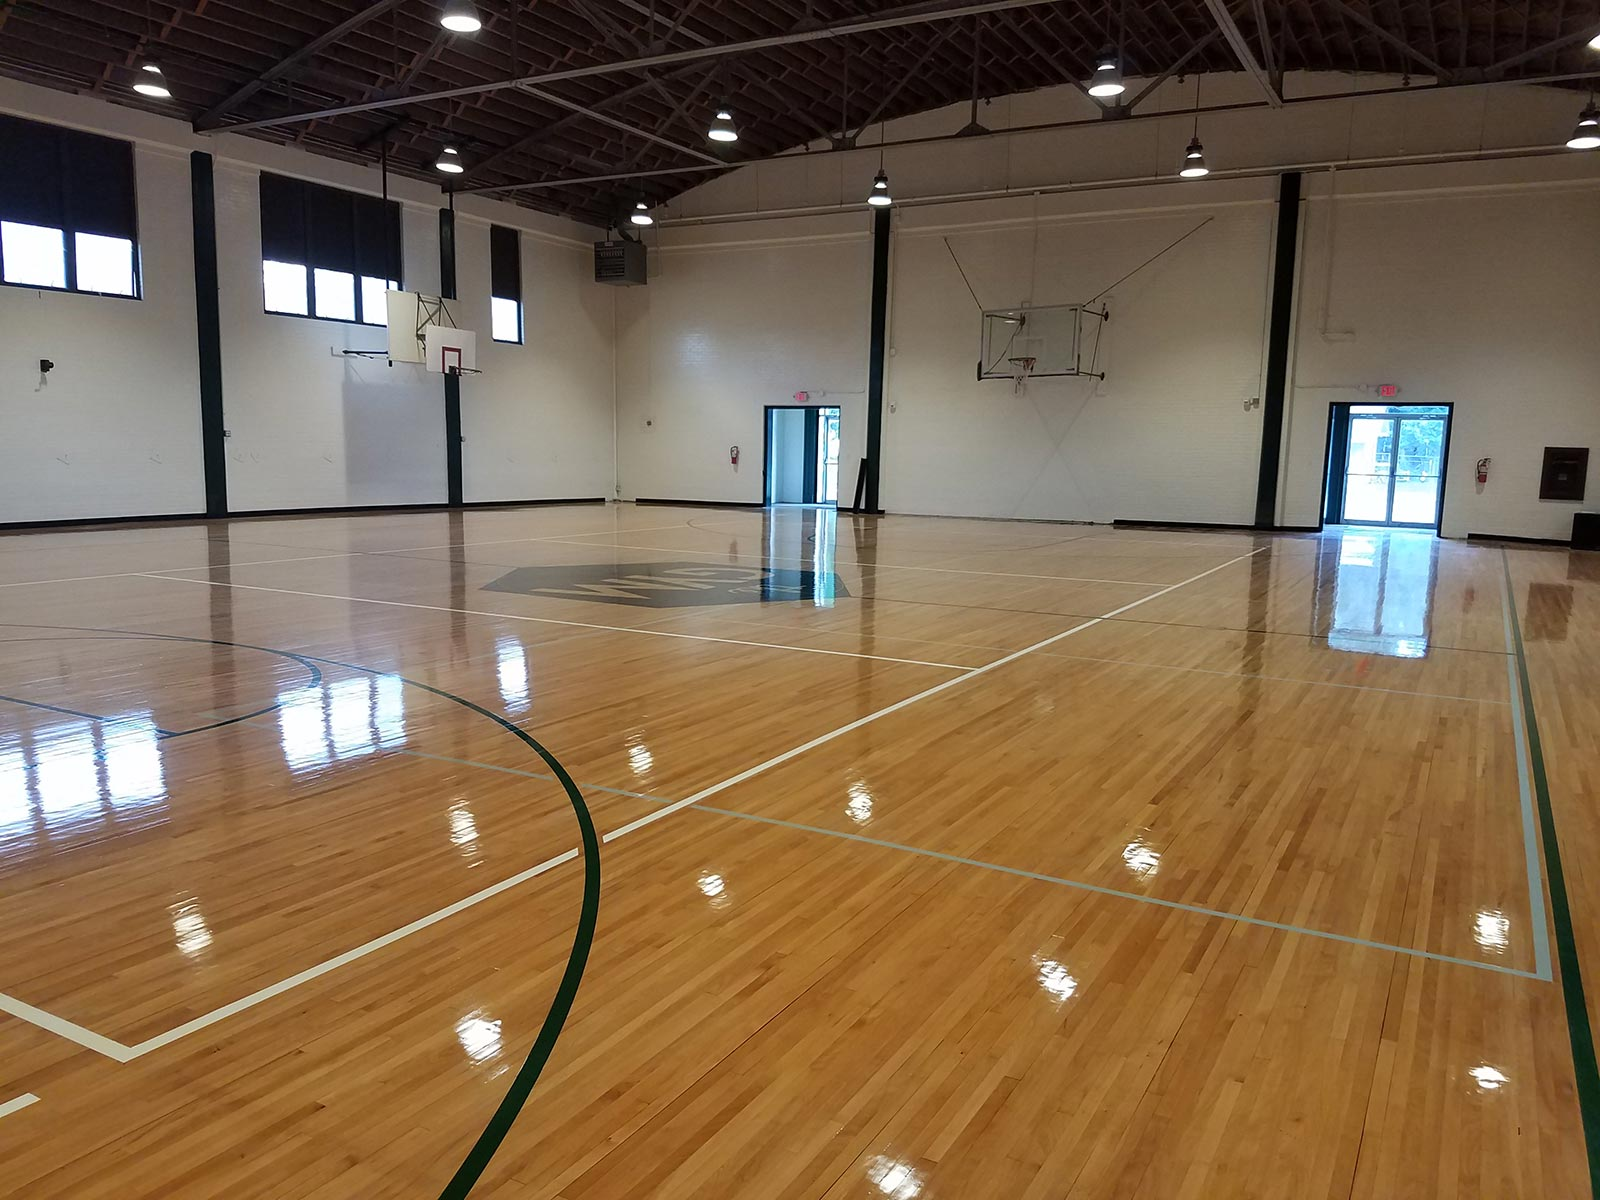 The restored original floor of the gymnasium at the historic high school campus in Taylor.  The 1930s gymnasium now serves as an event center with new restroom, bar and kitchen facilities. The campus required a Planned Development for reduced parking minimums, additional permitted uses and amplified sound, and the gymnasium required a building permit for the new restrooms, demo of interior walls, life safety features and commercial kitchen. We wrote the Planned Development documents, negotiated with city staff and presented the Planned Development to Taylor City Council for approval, which was unanimous.